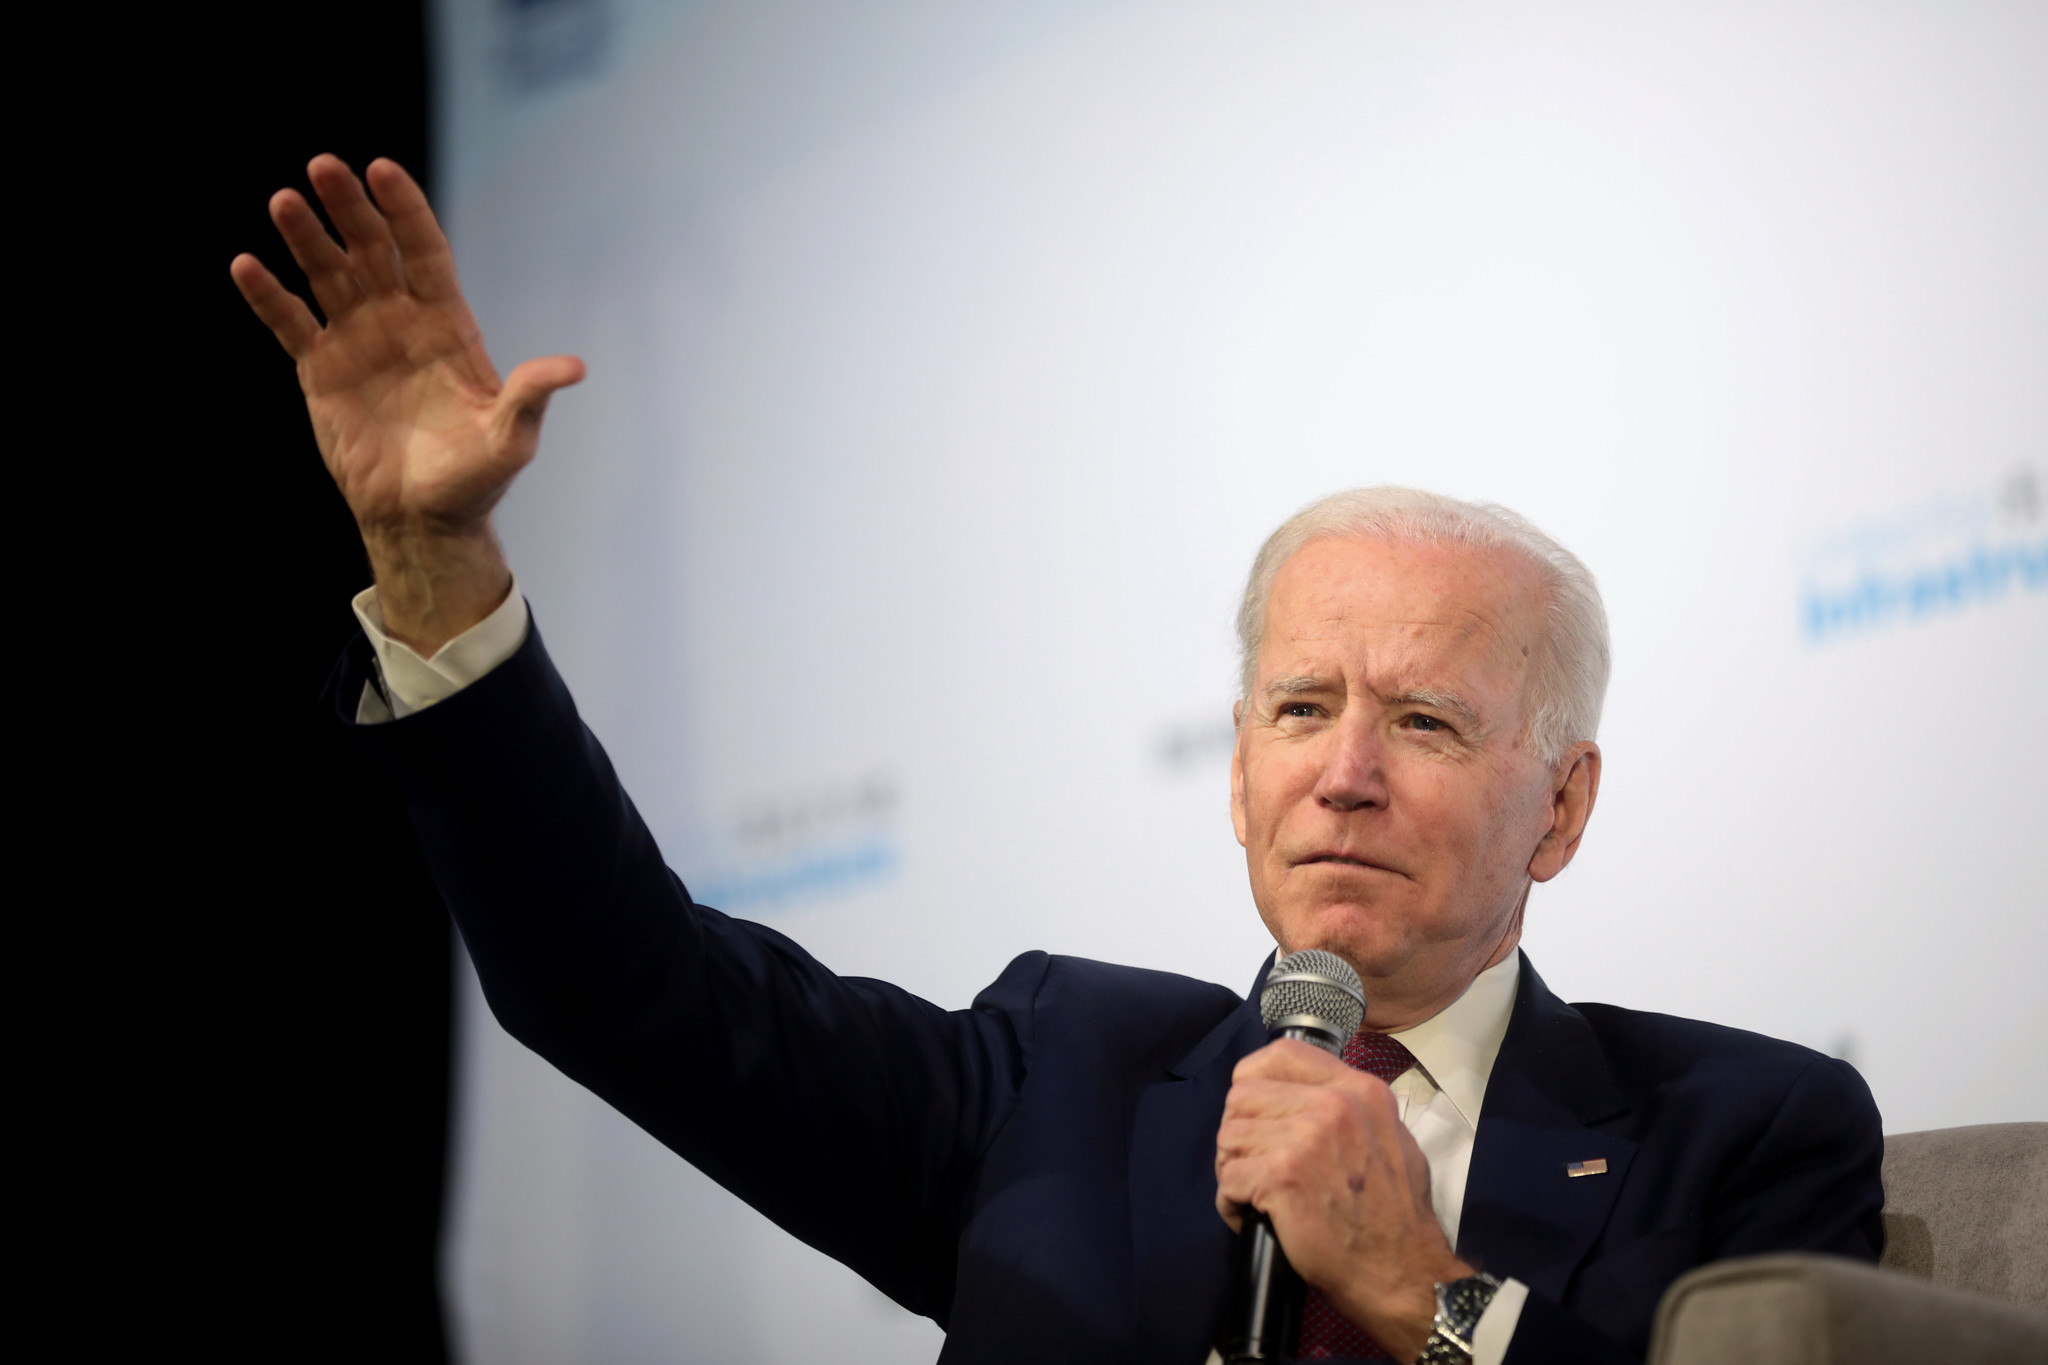 After clear victory in Arizona, Biden looks to be in control